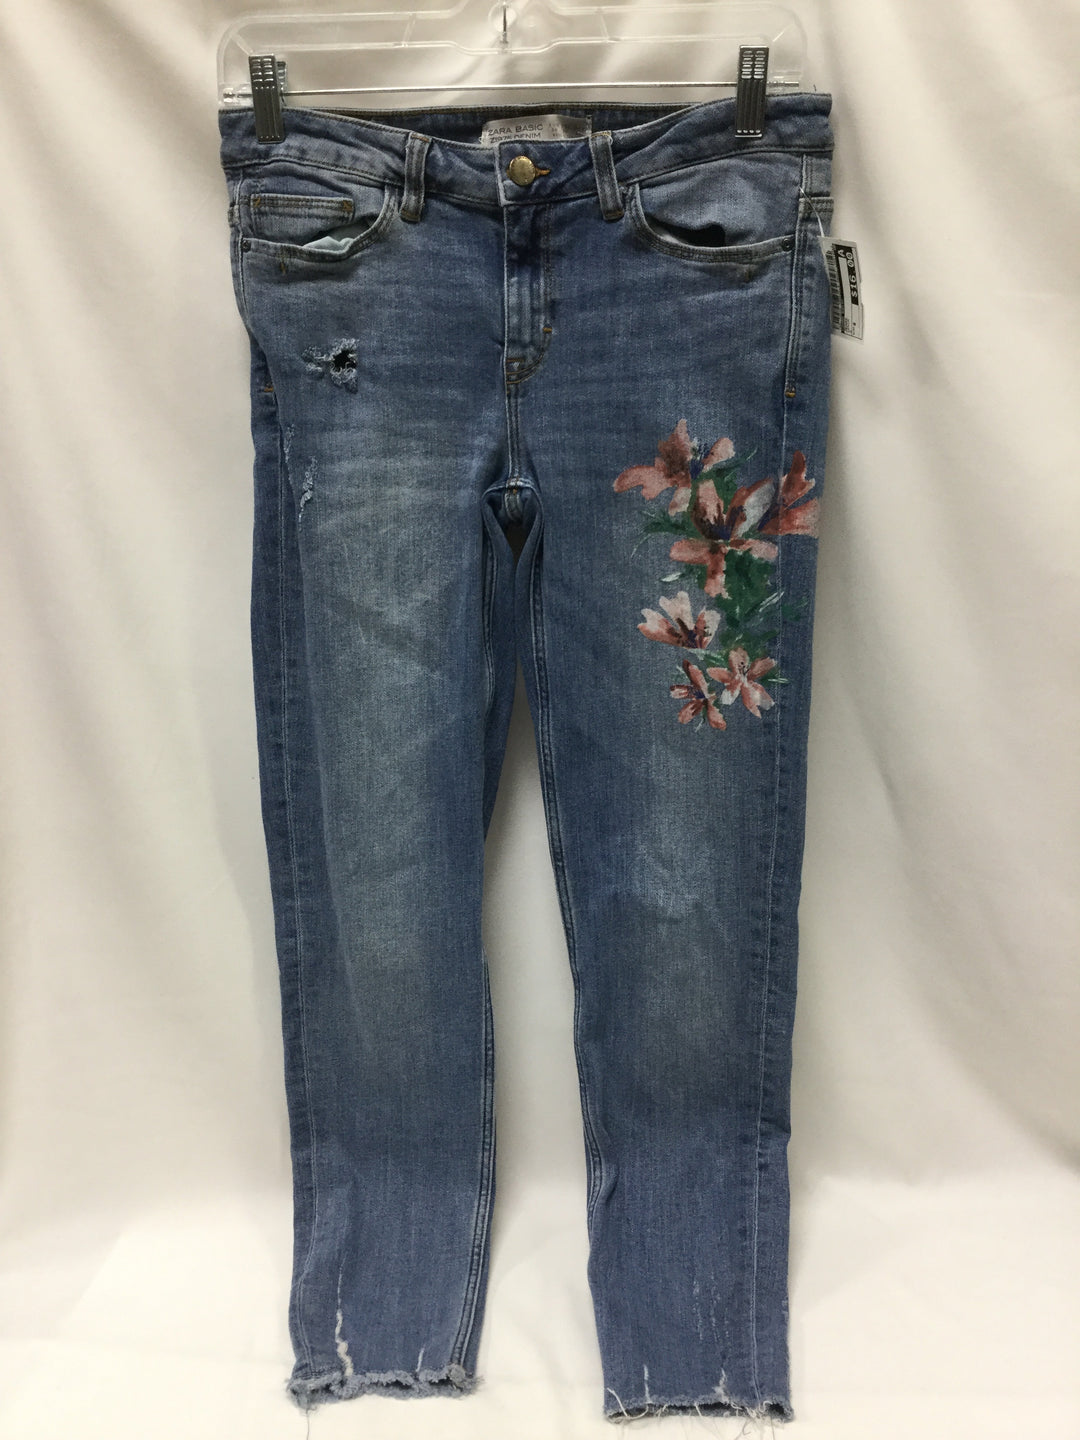 Primary Photo - BRAND: ZARA BASIC <BR>STYLE: JEANS <BR>COLOR: DENIM <BR>SIZE: 6 <BR>SKU: 155-15545-200925